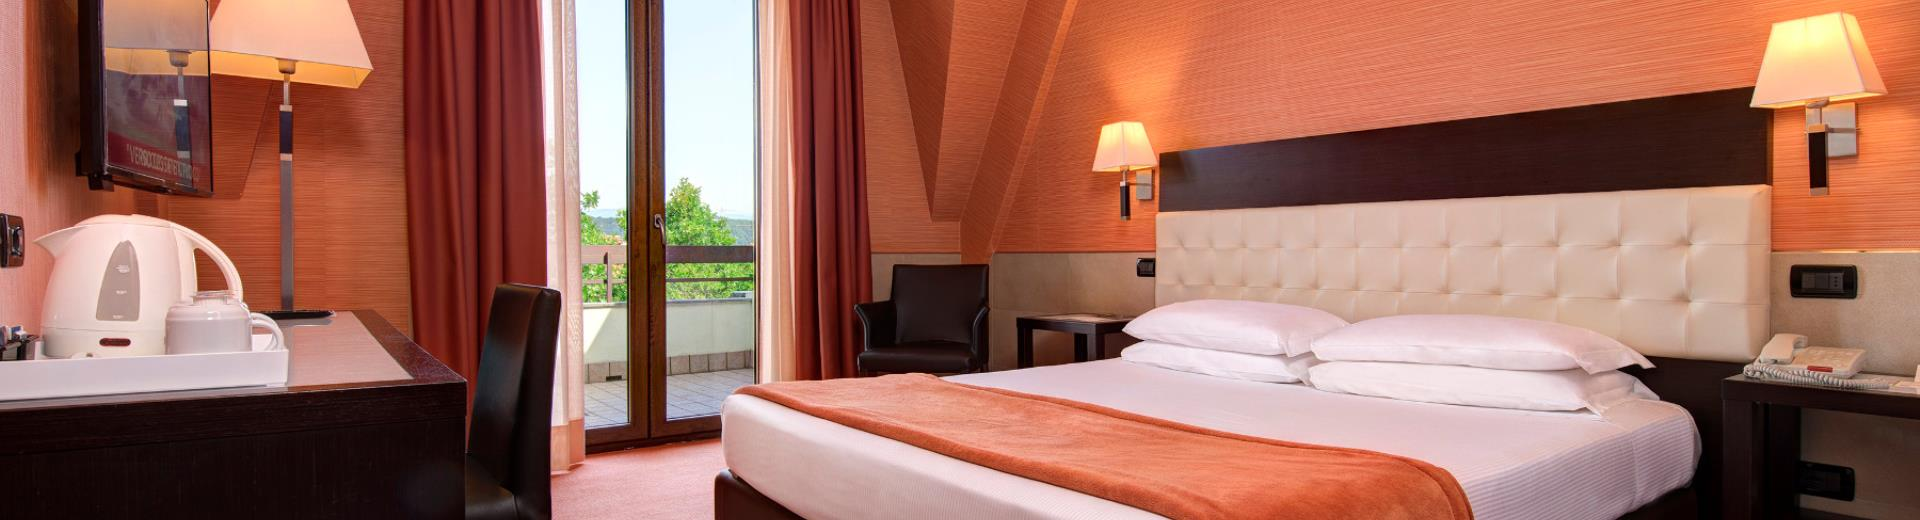 Double Superior Room - Best Western Gorizia Palace Hotel